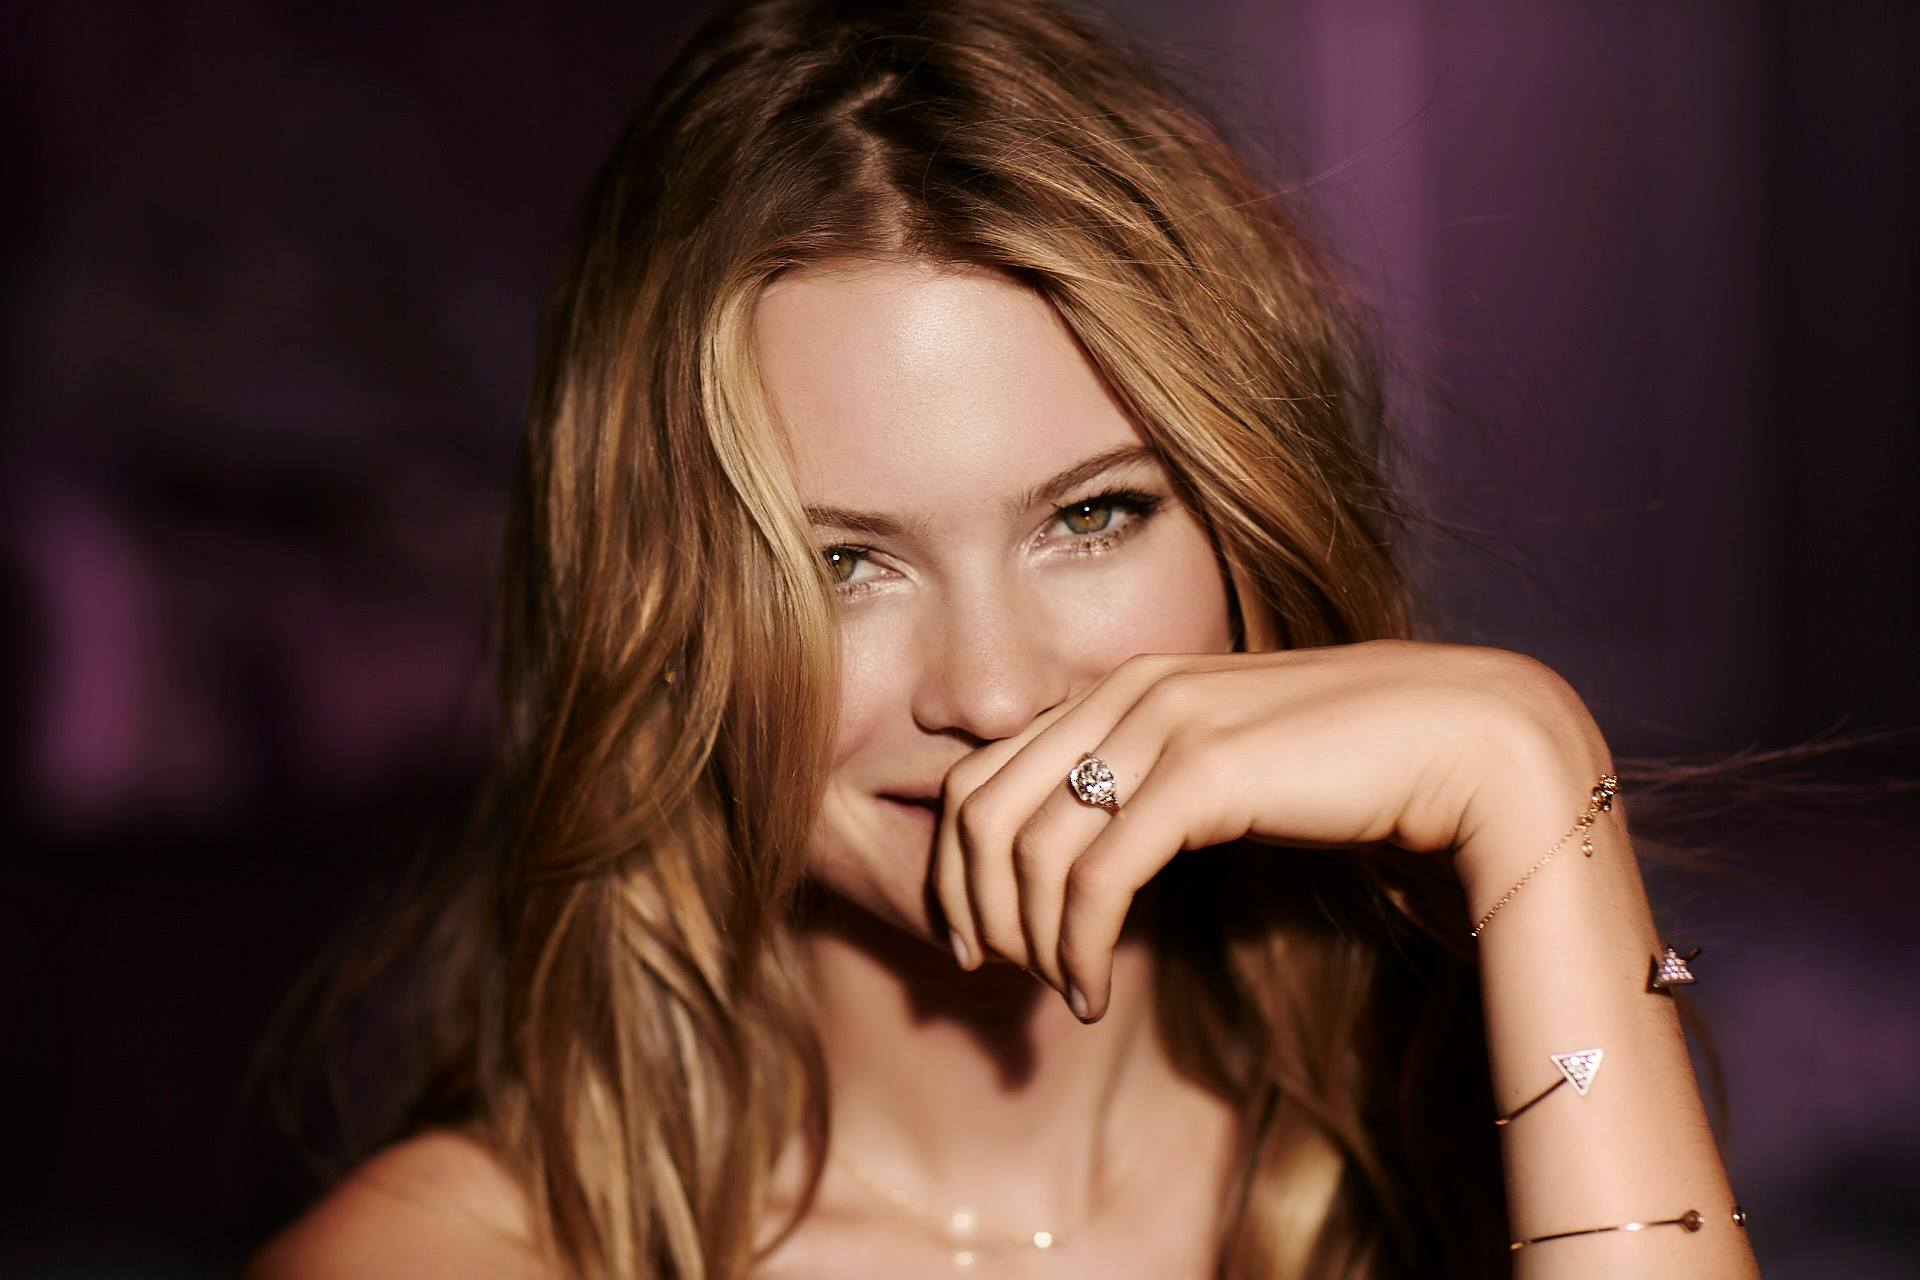 behati prinsloo celebrity wallpaper 57086